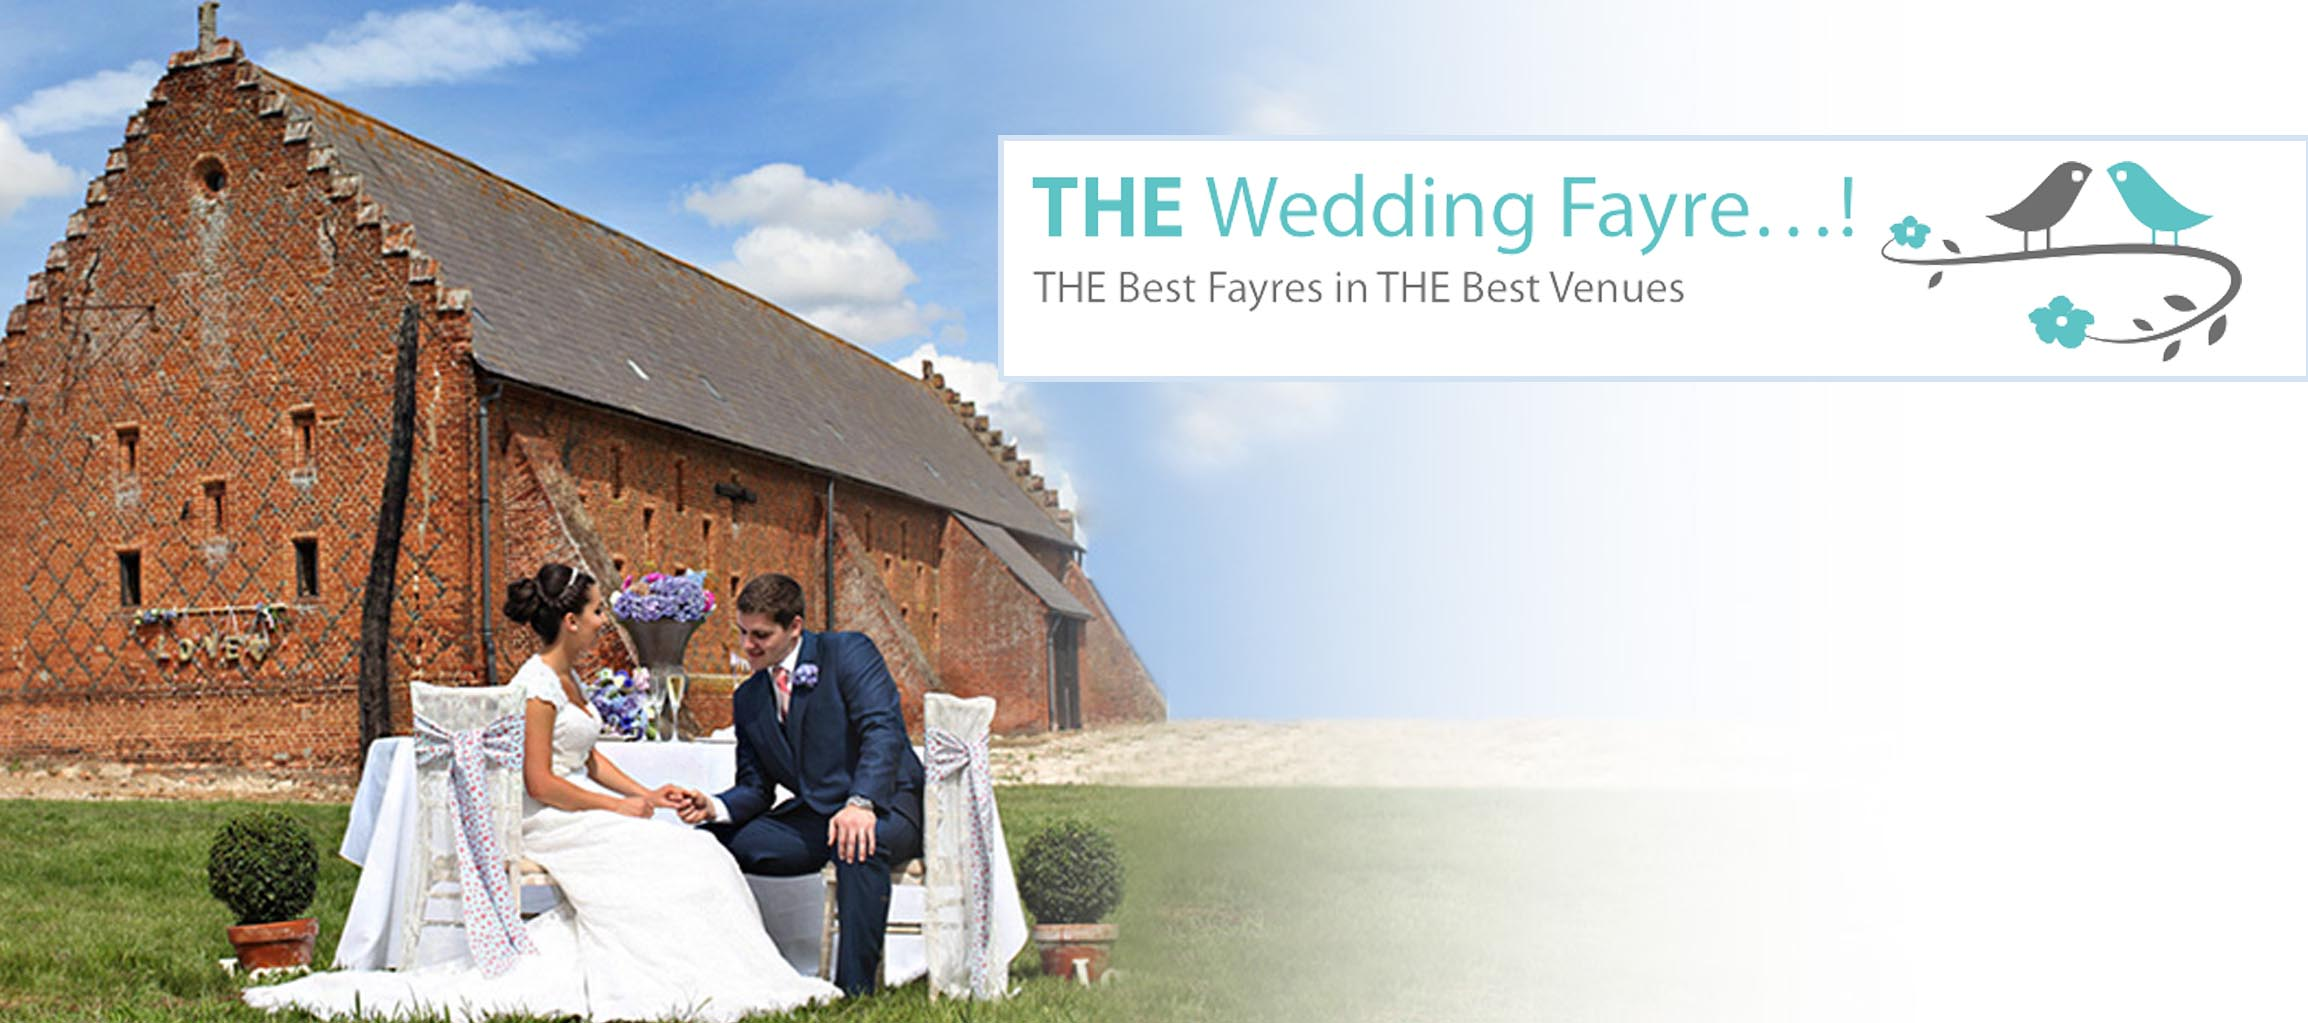 THE wedding fayre...! - 1st Oct '17 - Copdock Hall, Copdock.11.00am - 3.30pm